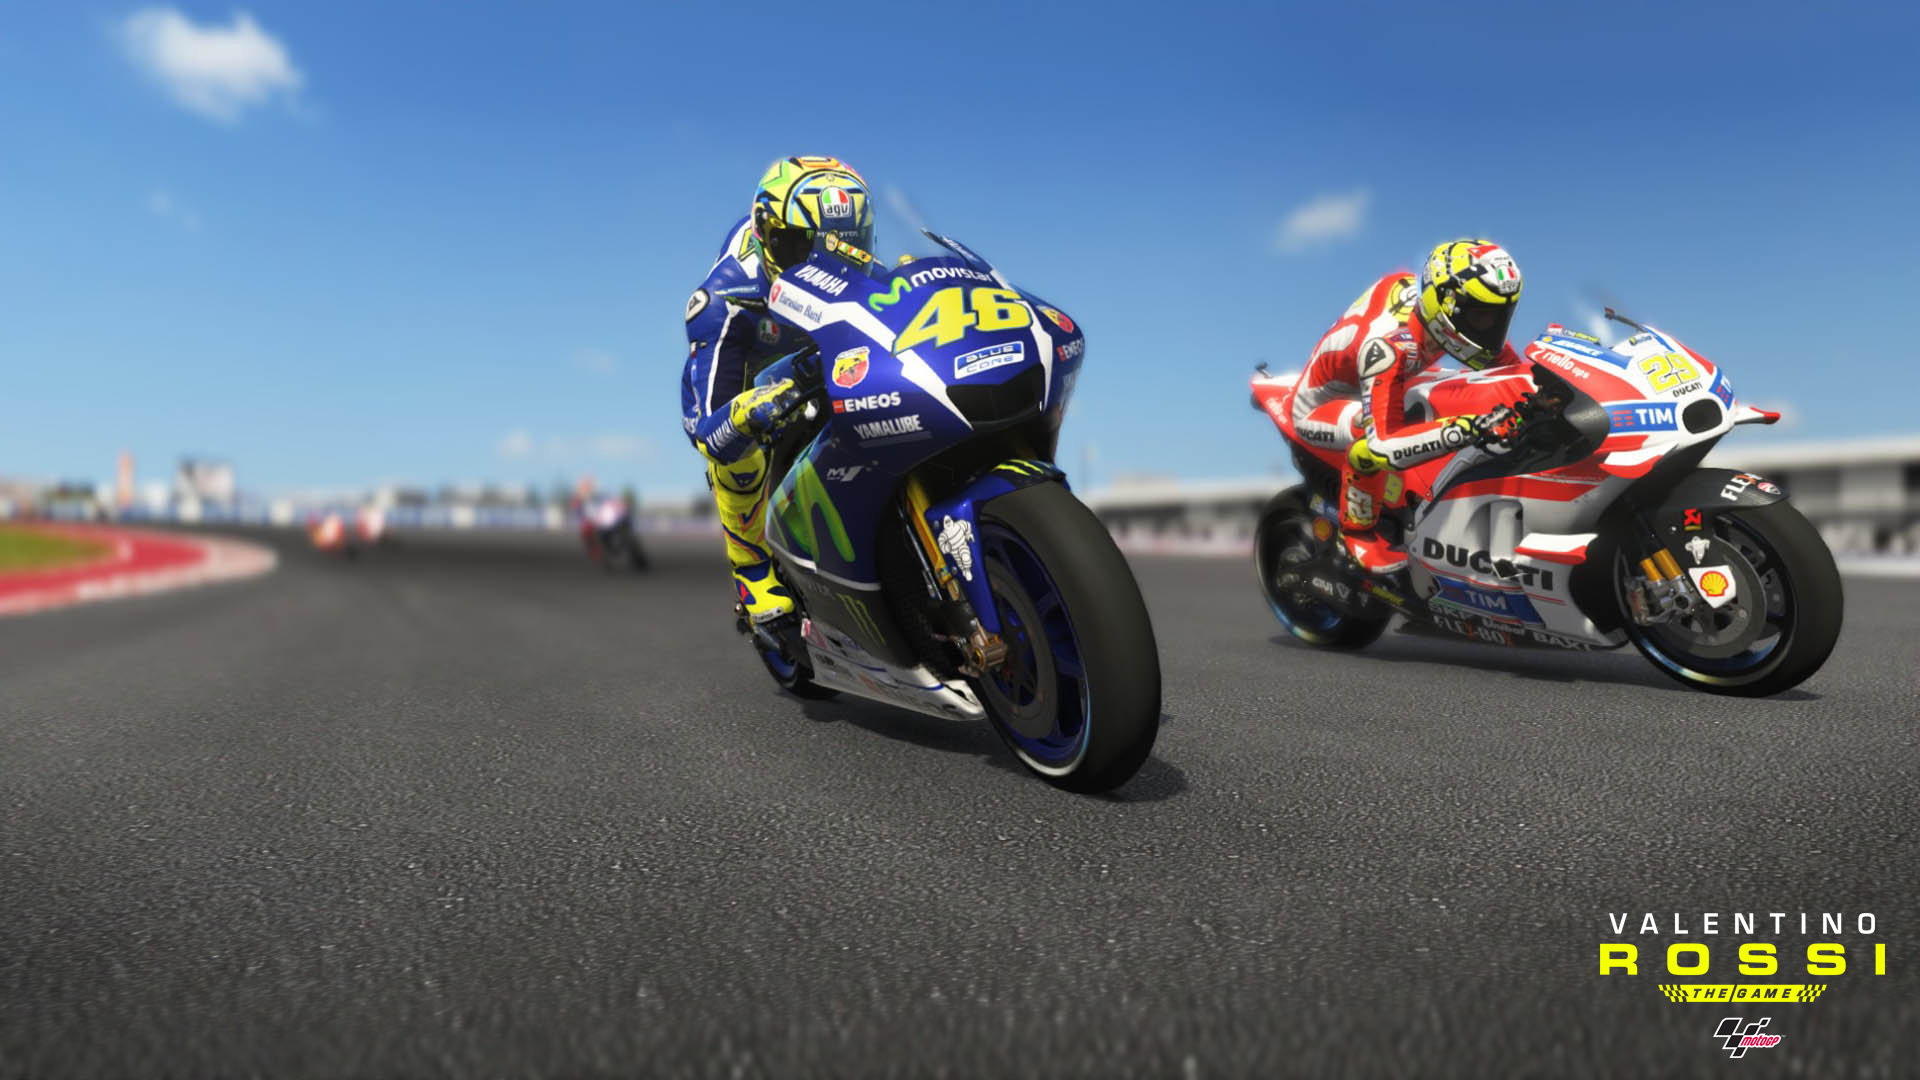 Valentino Rossi The Game Free Full Game Download - Free PC Games Den